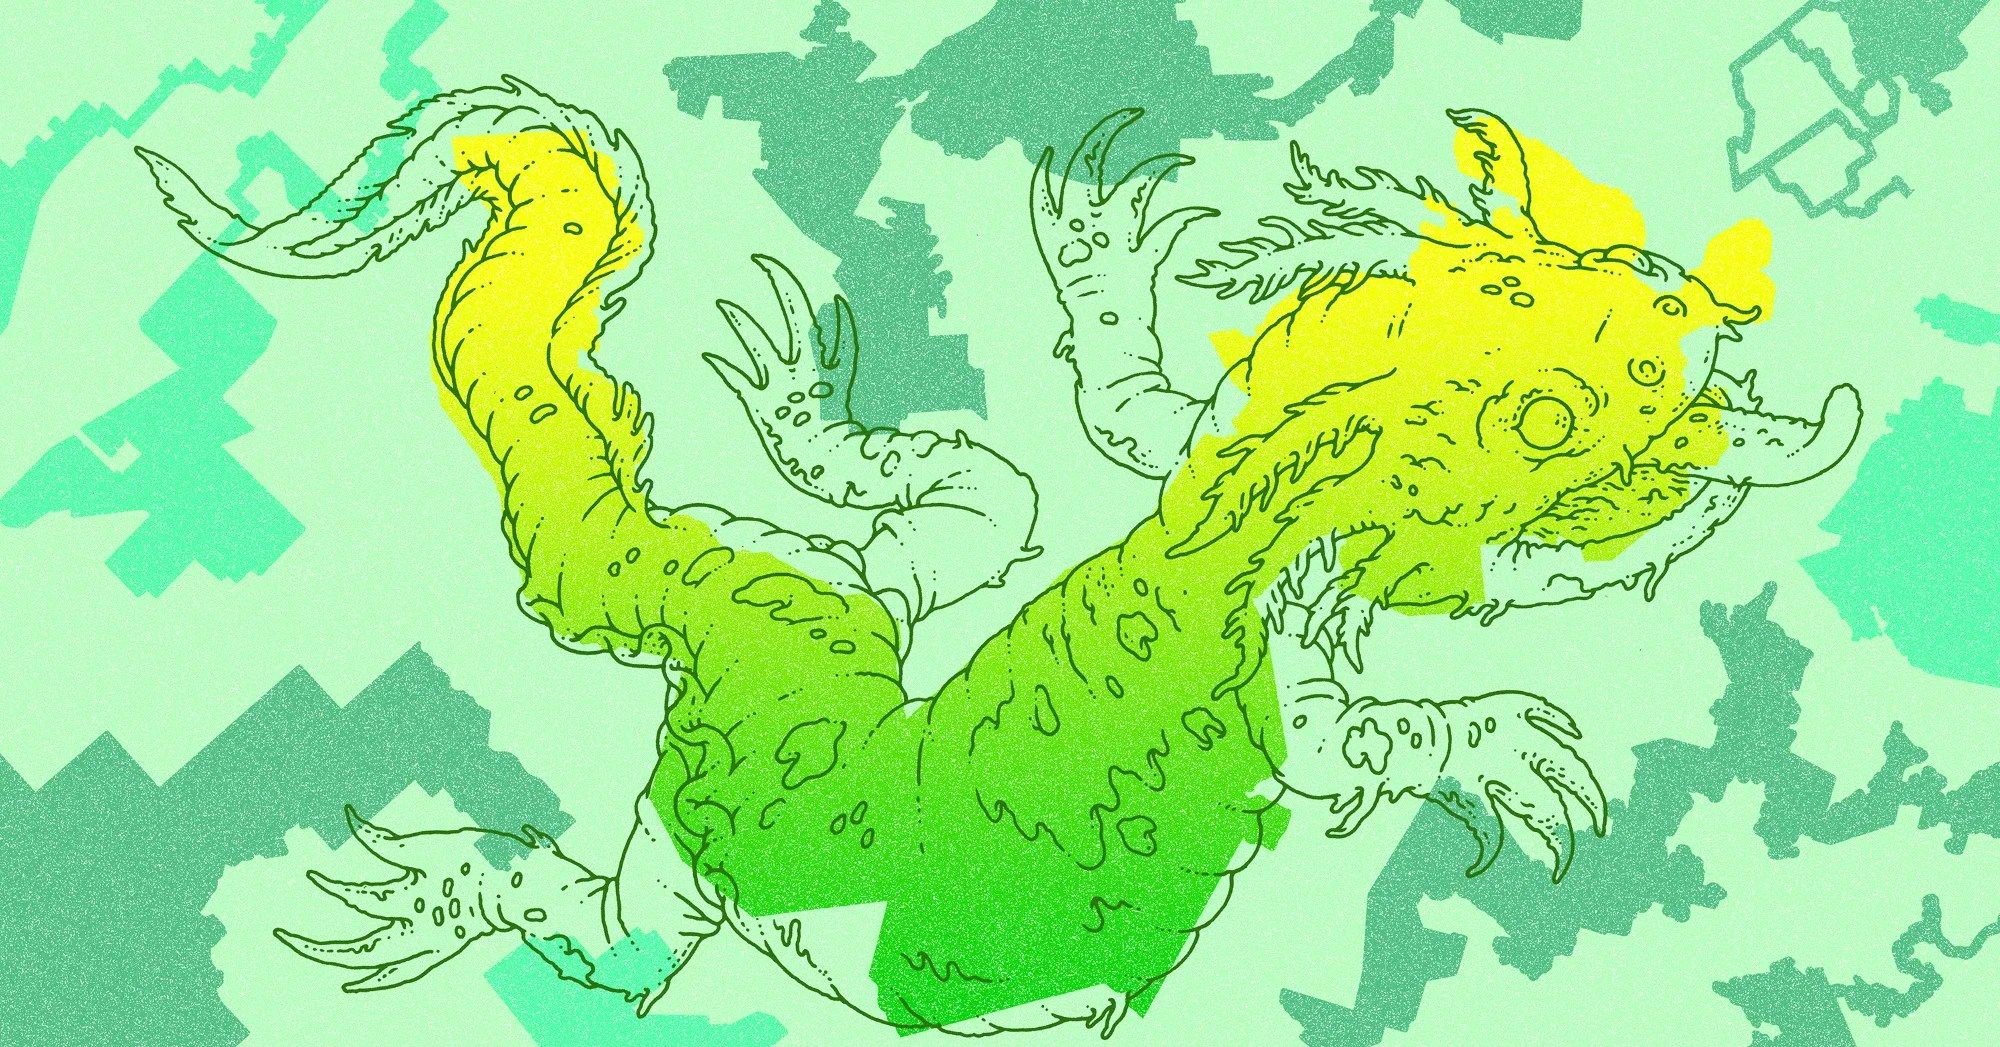 Gerrymandering Is Illegal, but Only Mathematicians Can ...